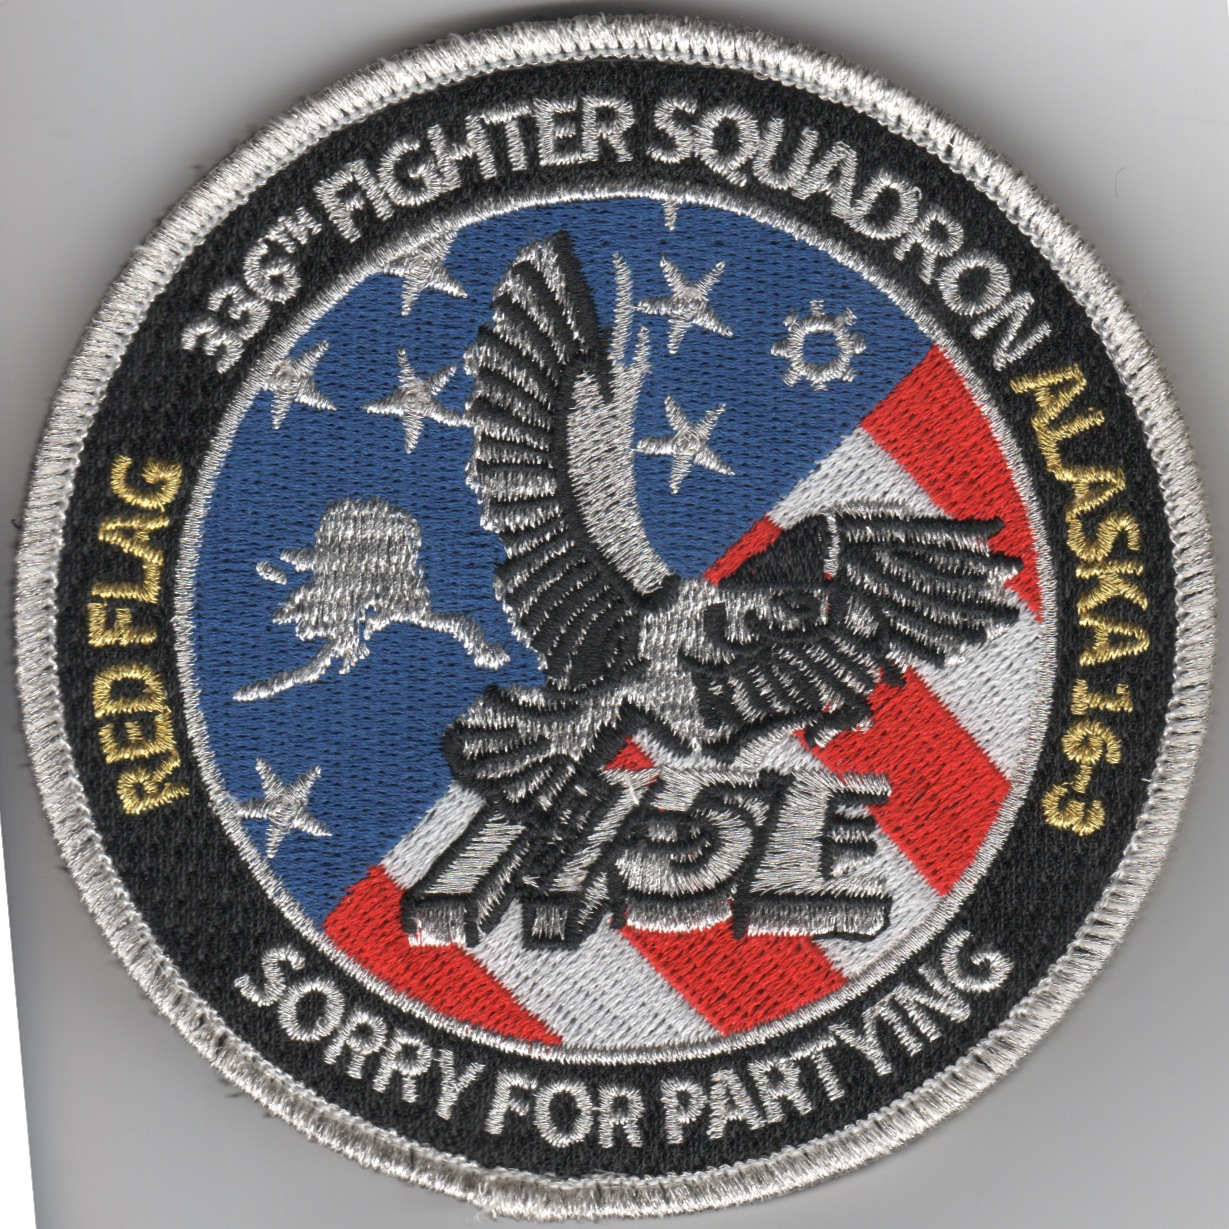 336FS RF16-3 'Tinsel' Patch (R/W/B)